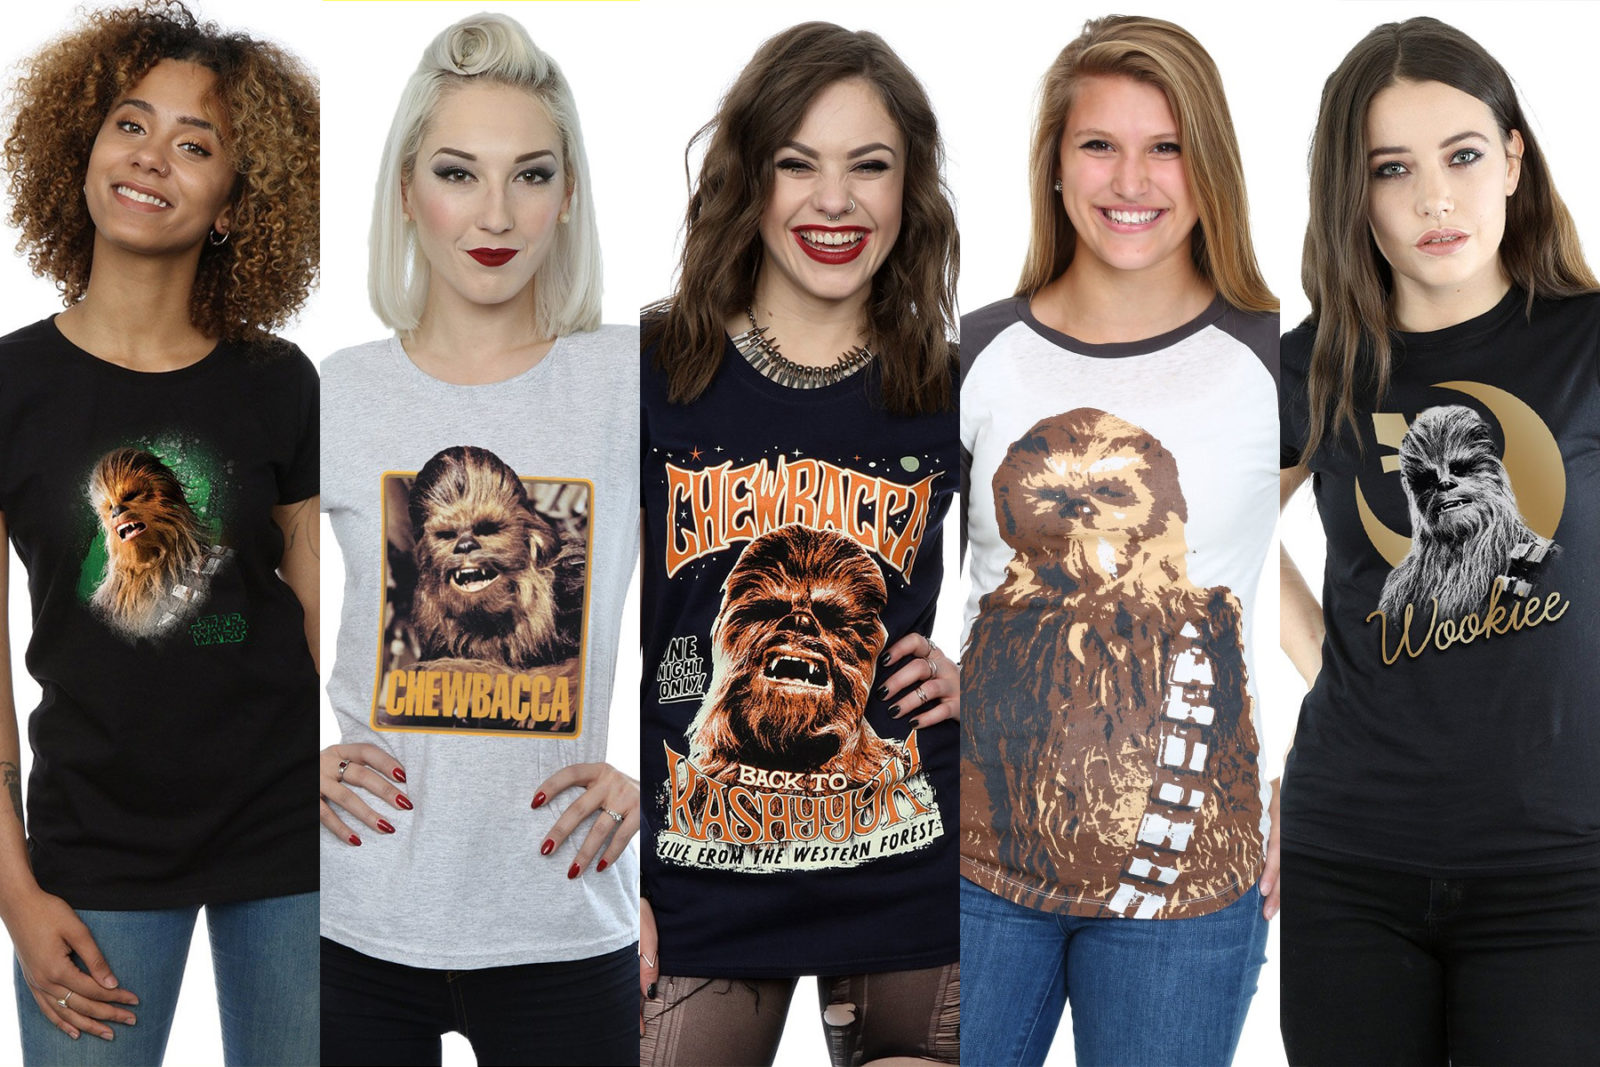 Leia's List – Women's Chewbacca Printed Tops